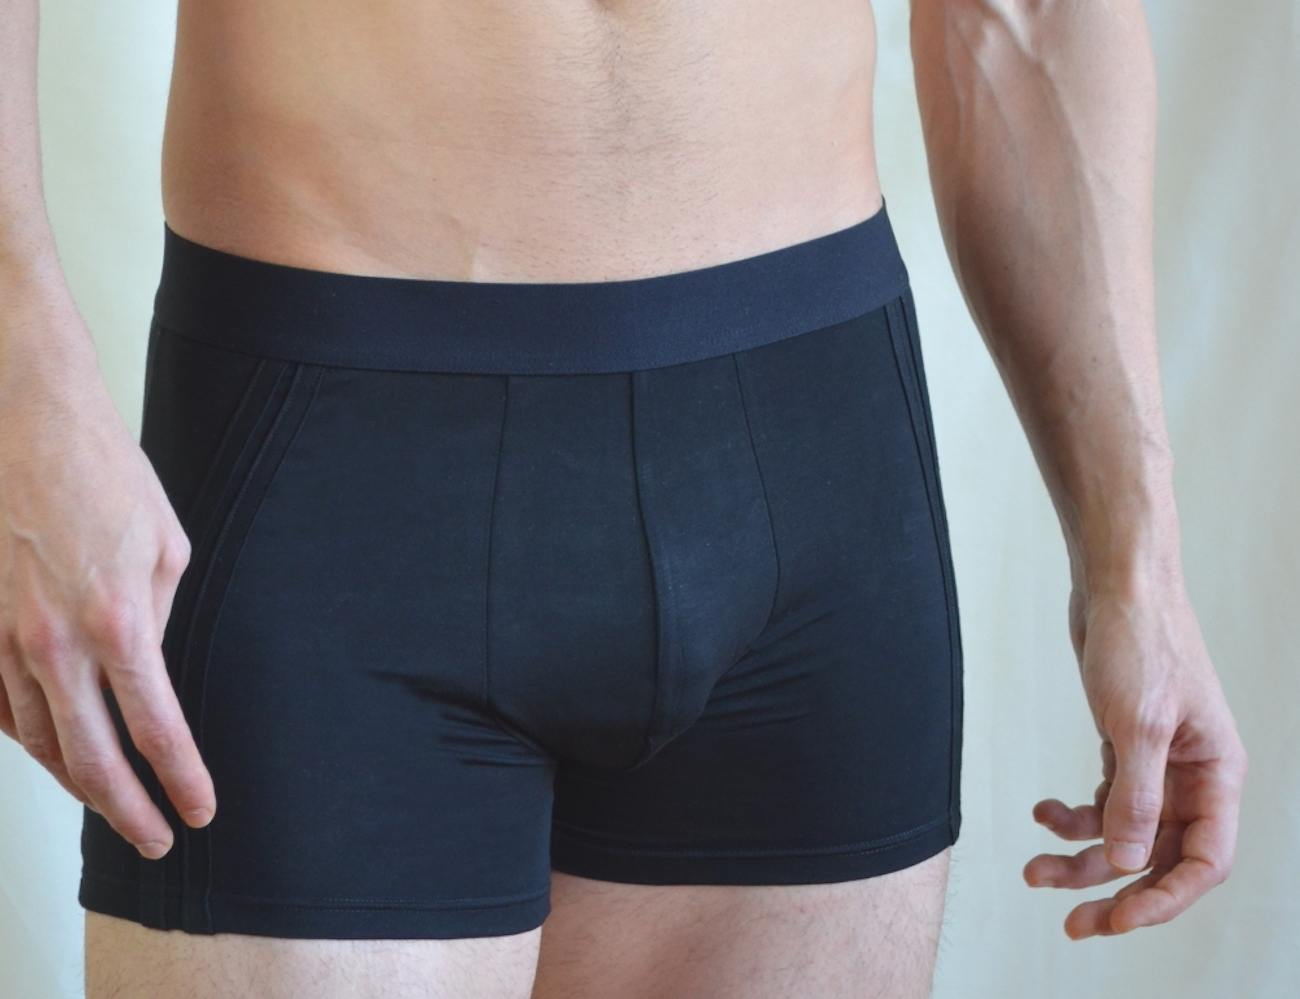 Buddha Boxers Sustainable Underwear